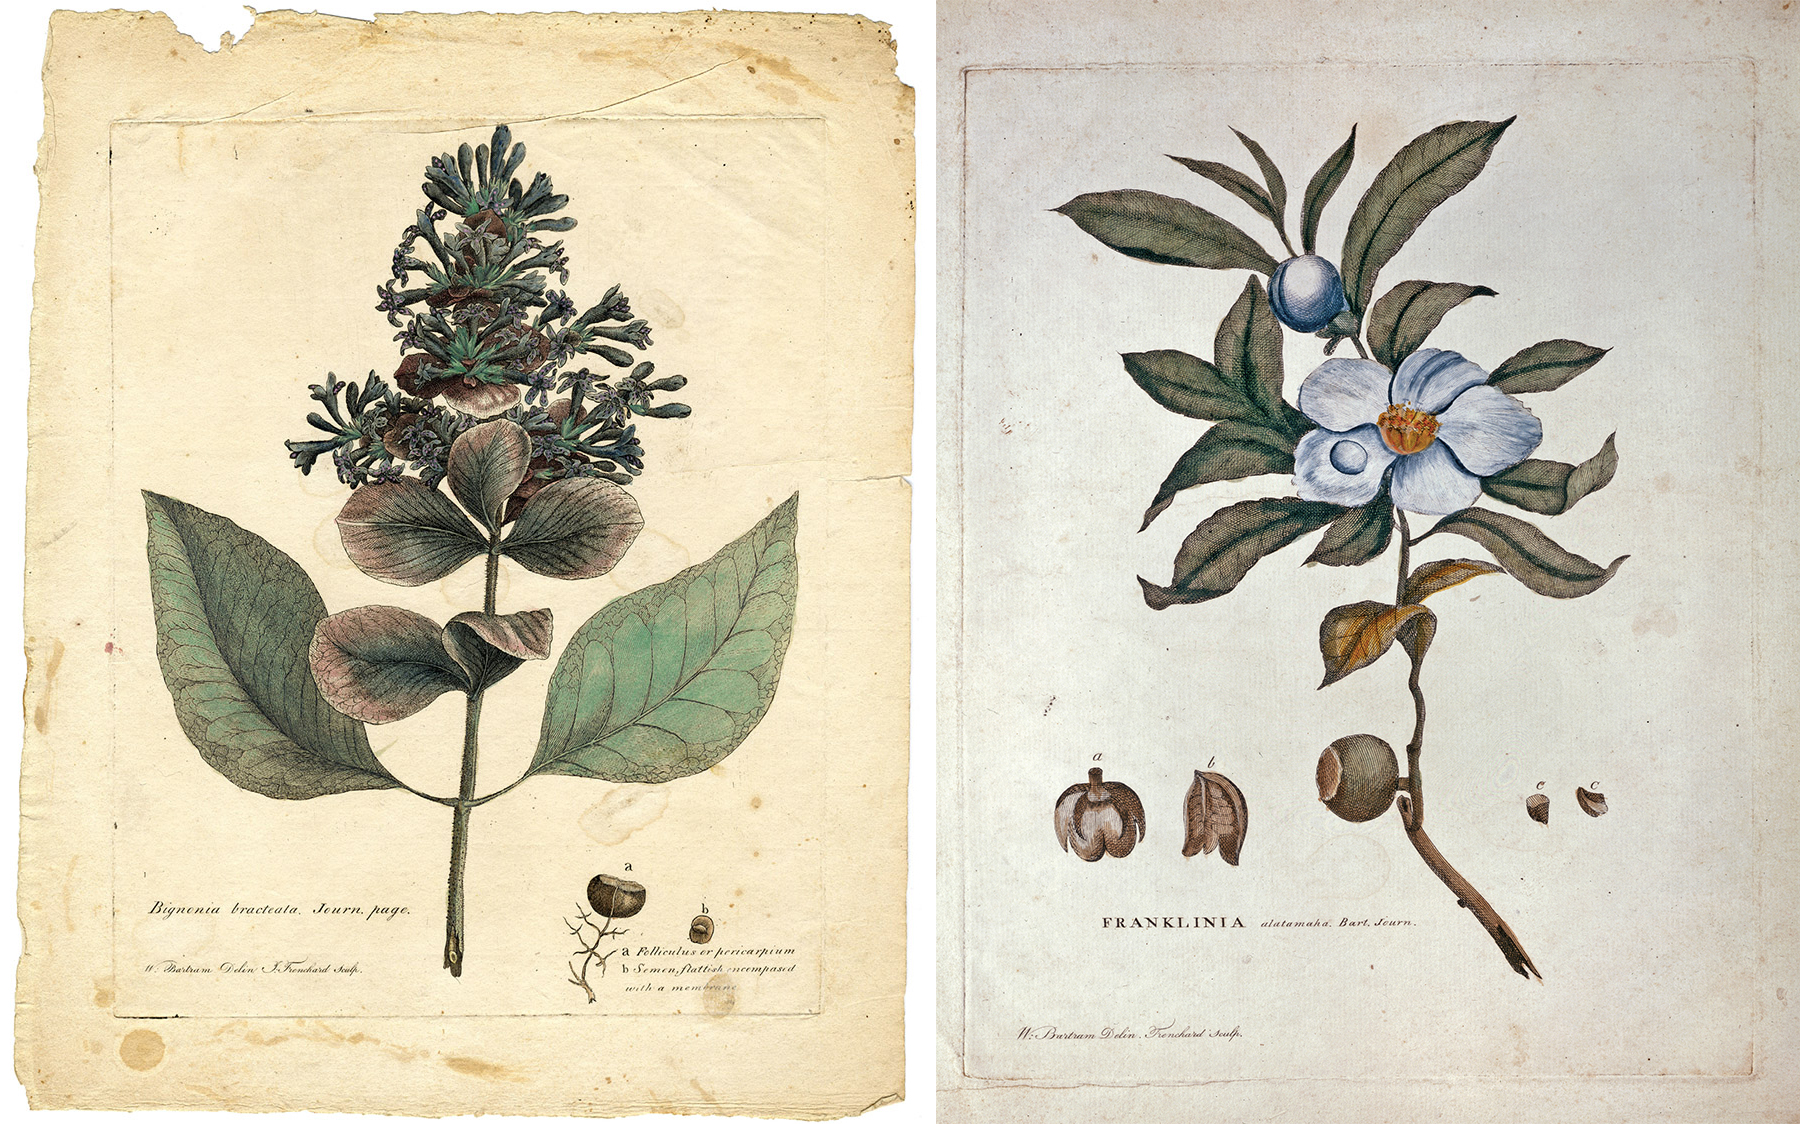 """James Trenchard engravings of two William Bartram drawings from the set of 8 rare extra plates:""""Bignonia Bracteata"""" (left) modernly known as  Pinckneya or fevertree and """"Franklinia alatamaha""""(Image: American Philosophical Socitey Library)"""